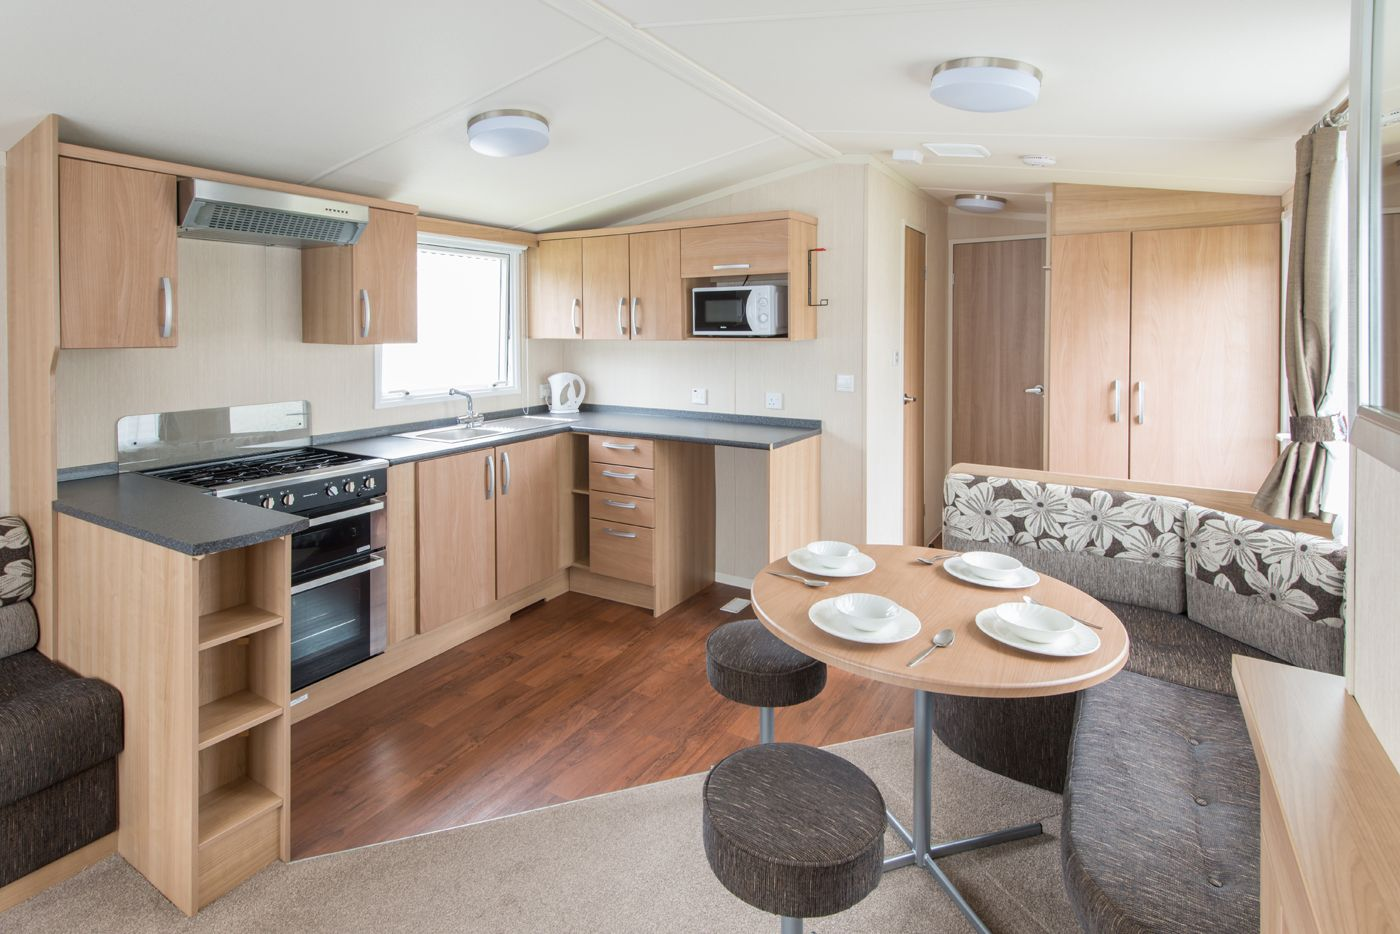 A home away from home. Inside our Static Caravans at River